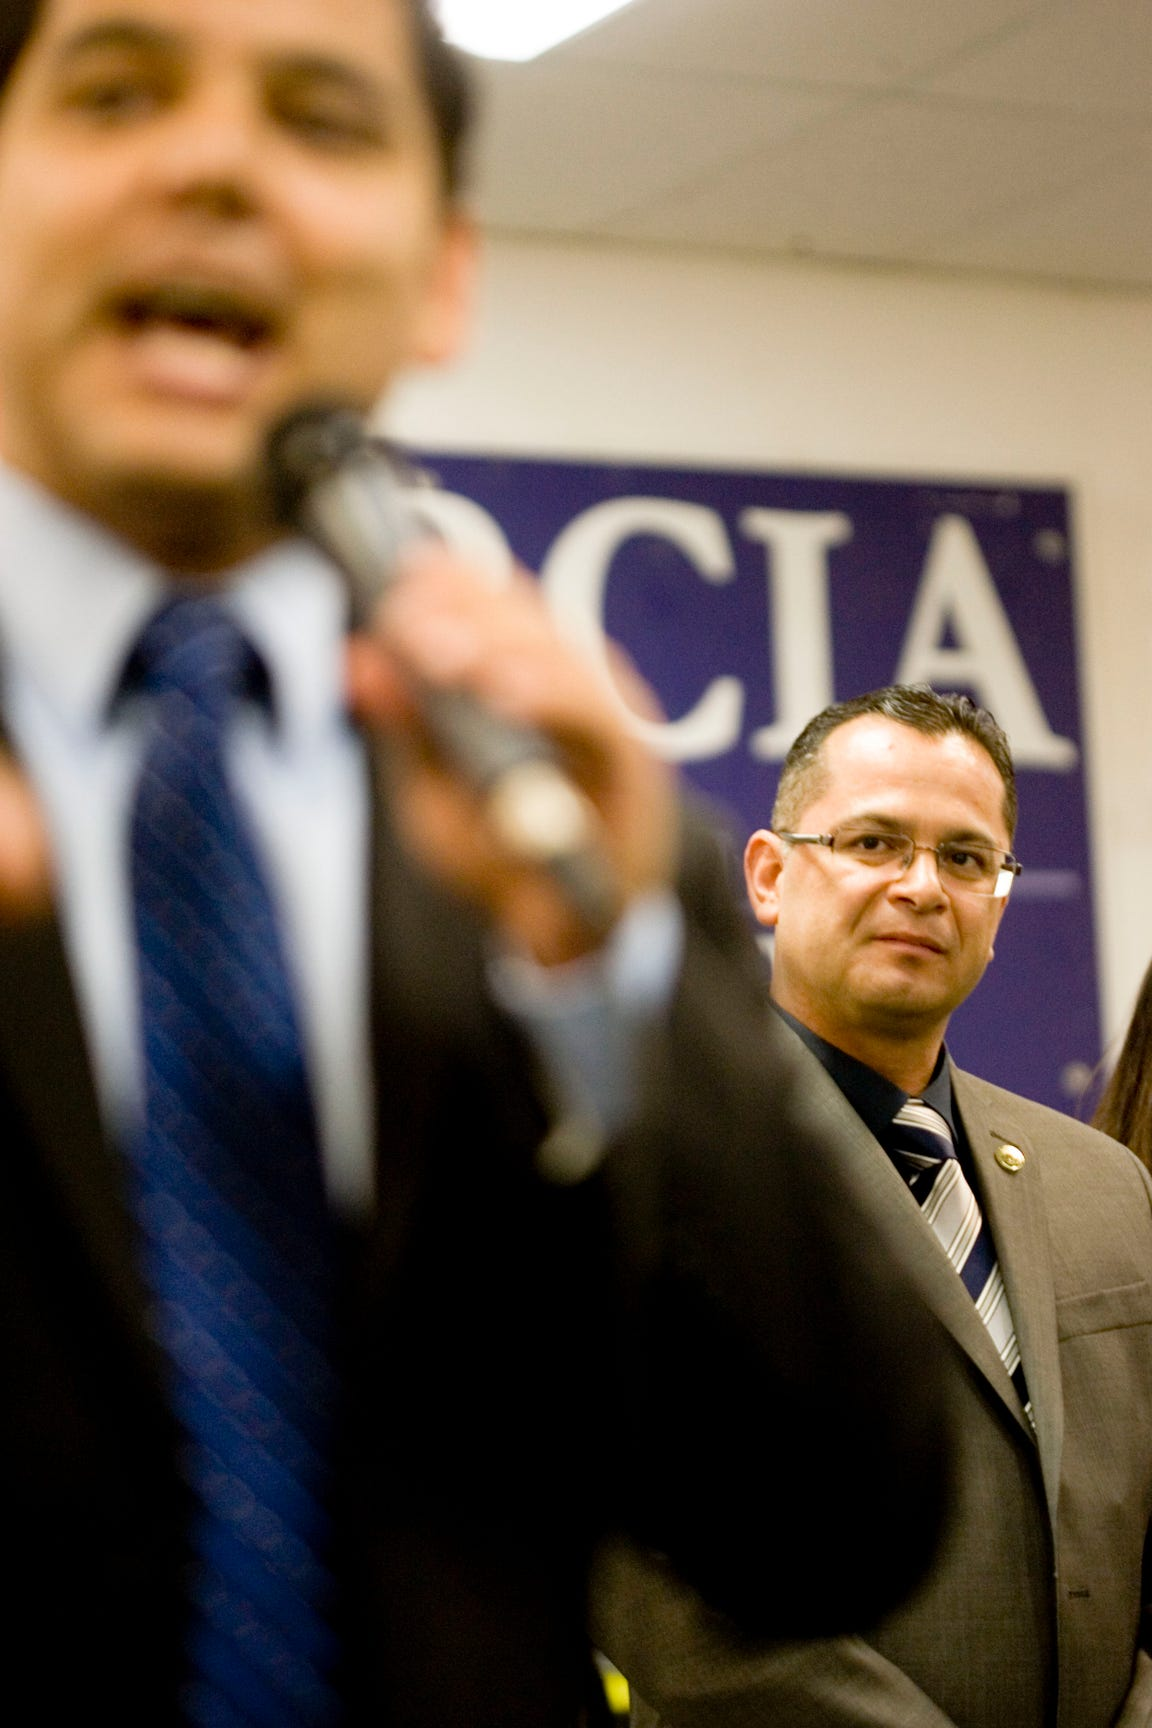 Assemblyman V. Manuel Perez observes Dr. Raul Ruiz as he speaks to supporters at the offices of Perez in the city of Coachella on election night November 6, 2012.